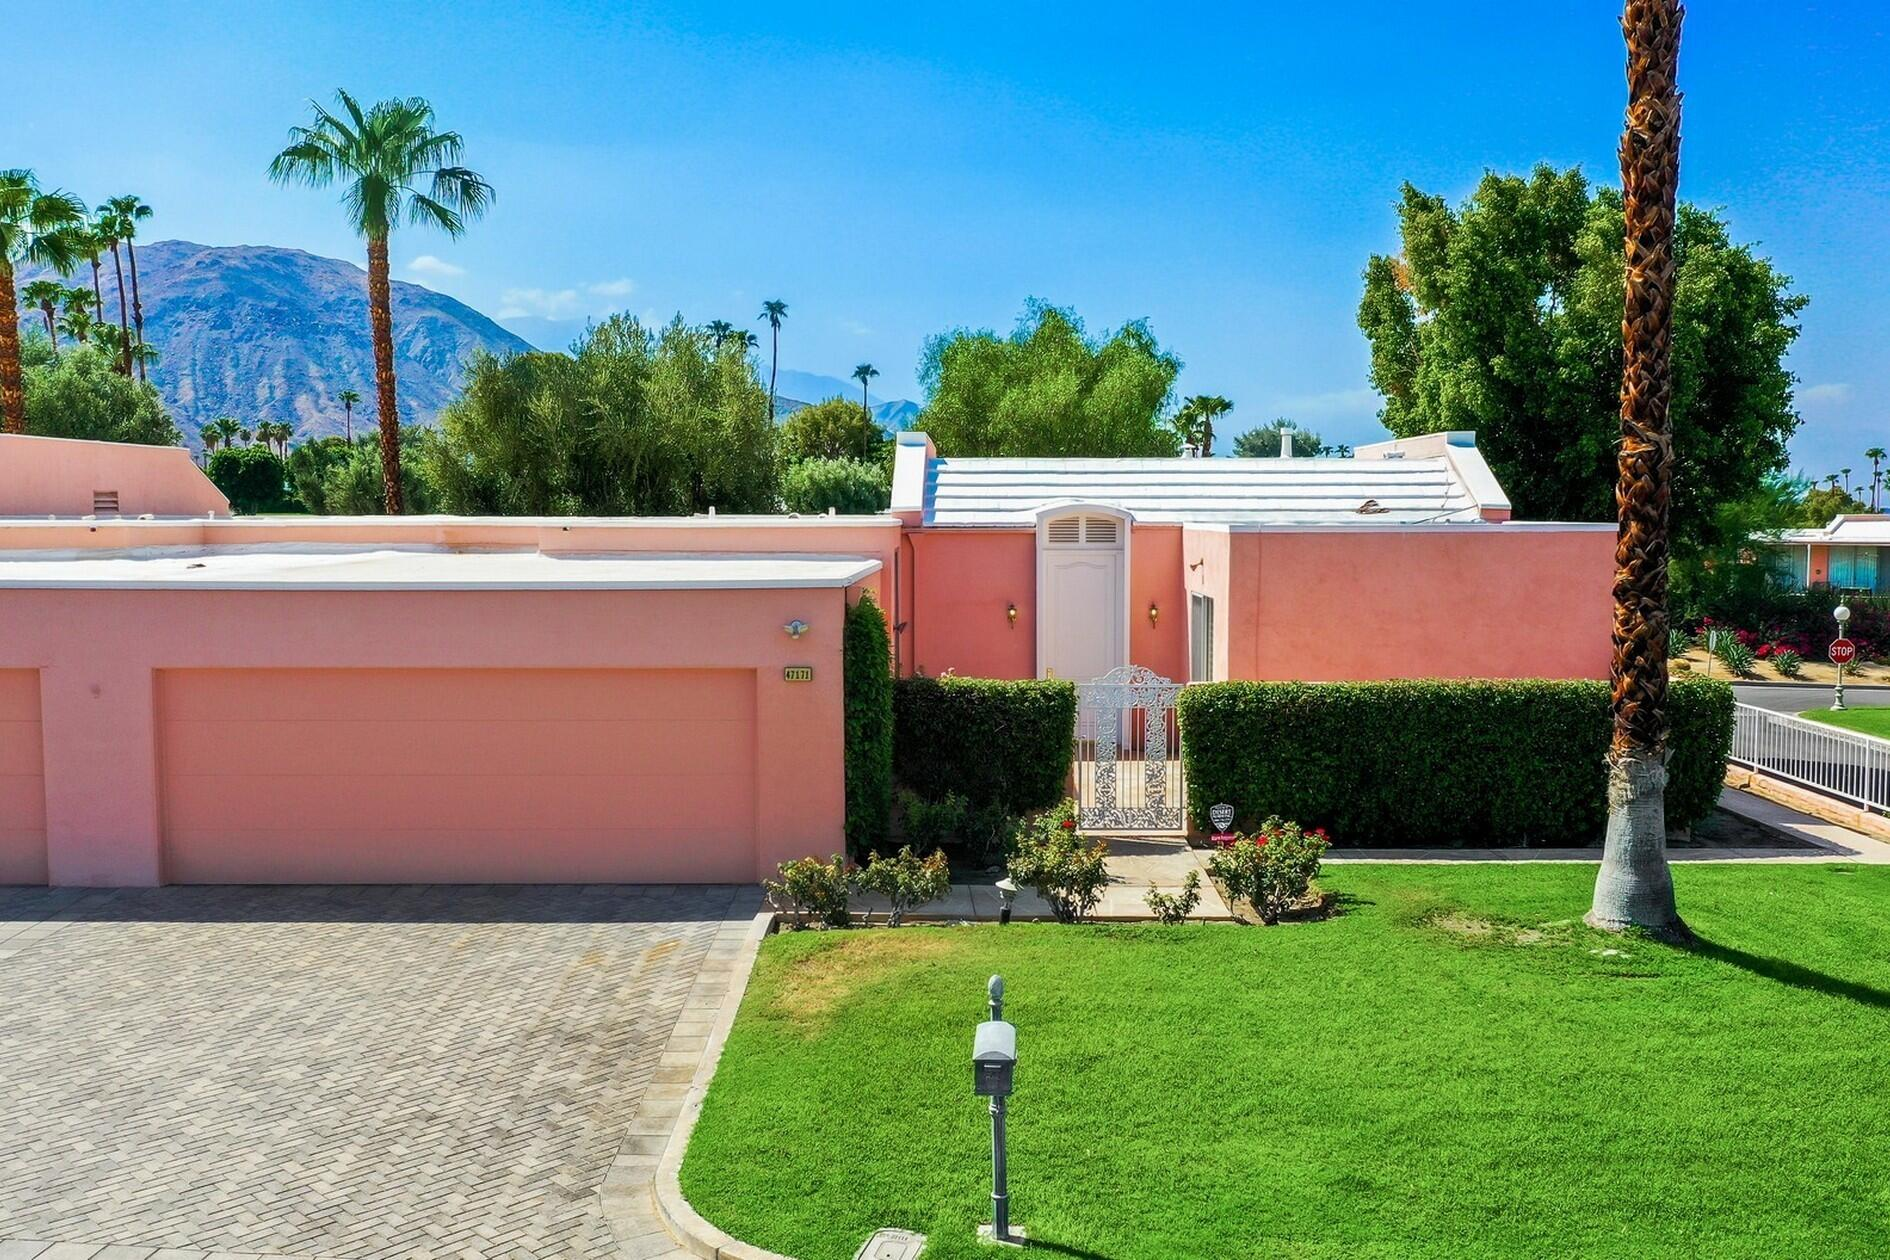 Marrakesh! Well priced- modified C Plan expanded to include a 3rd bedroom and 3/4 bath. This West facing residence is a neutral palette ready for your clients to update and create their very own interior.  Property is situated on a S/W corner allowing for much light & wonderful sunsets.   Please note home corners Marrakesh Drive and El Agadir Circle. Pedestrian, Golf and some car Traffic is apparent- however one could overlook with the westerly mountains in the background!  Great location for people that like to be interactive with street scene, golf course activity and with all that goes on at Marrakesh CC.